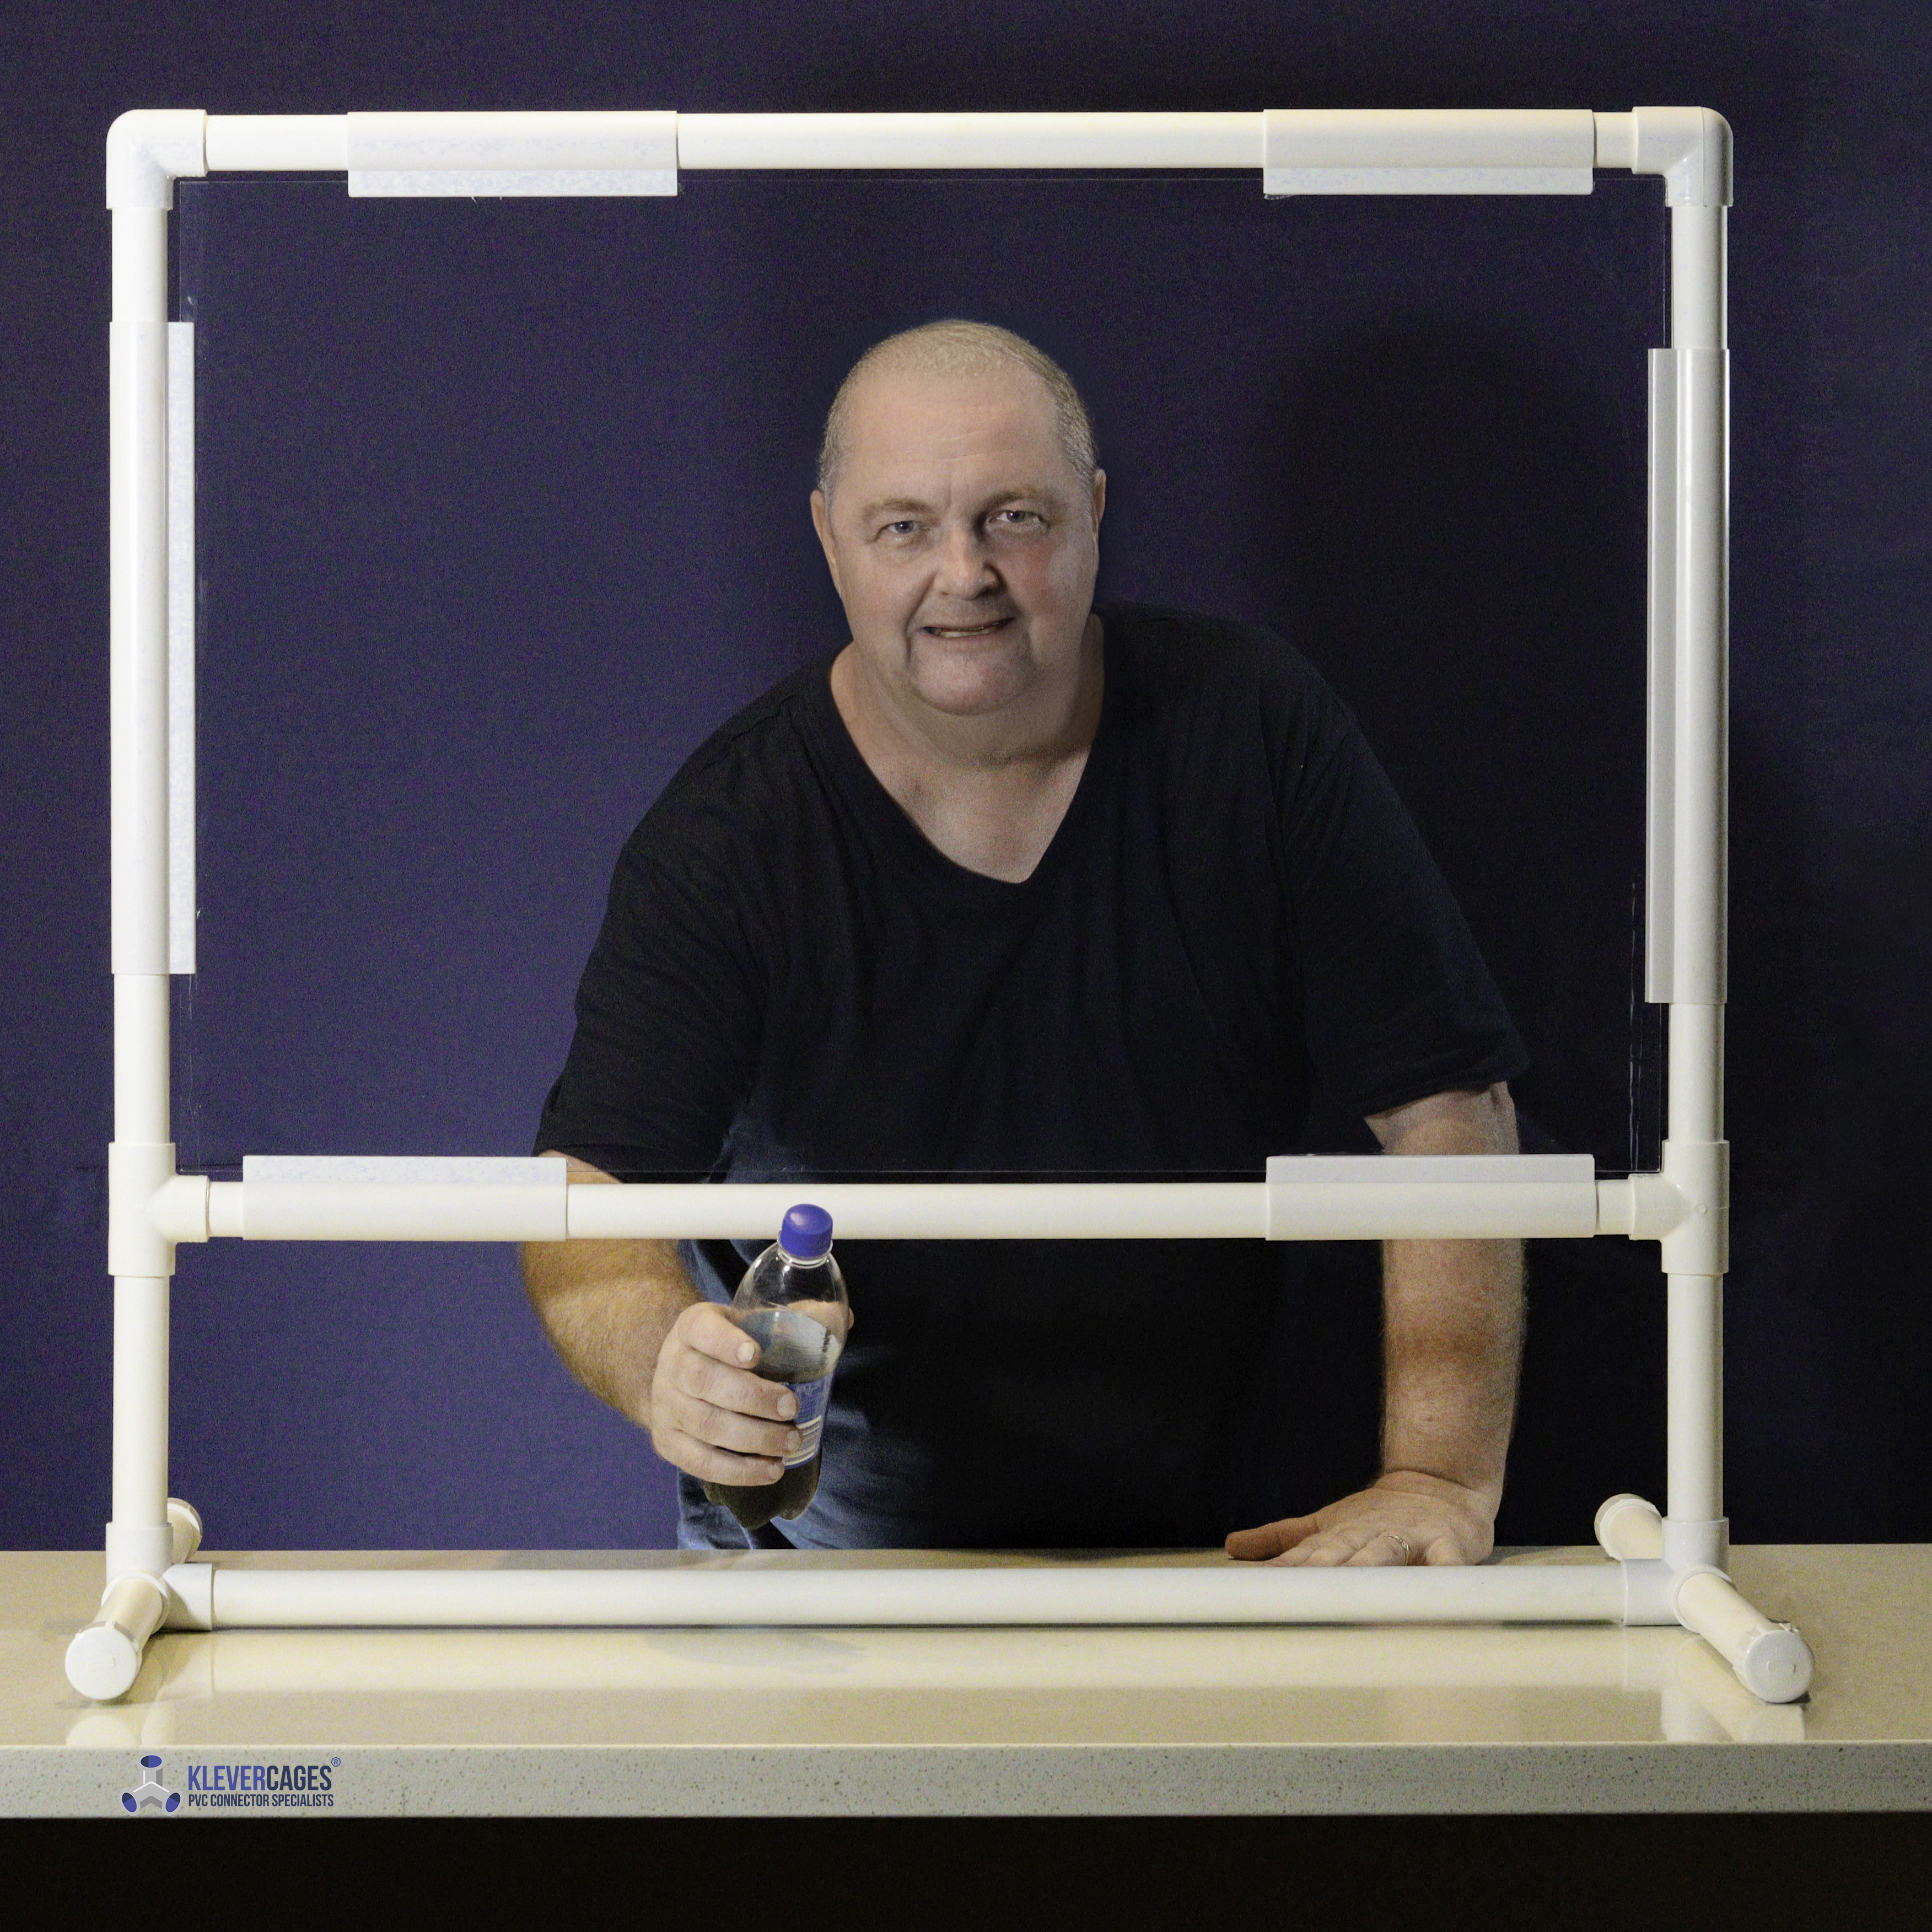 shop attendant serving a drink while behind a Perspex screen supported by PVC pipe and connectors from Klever Cages.